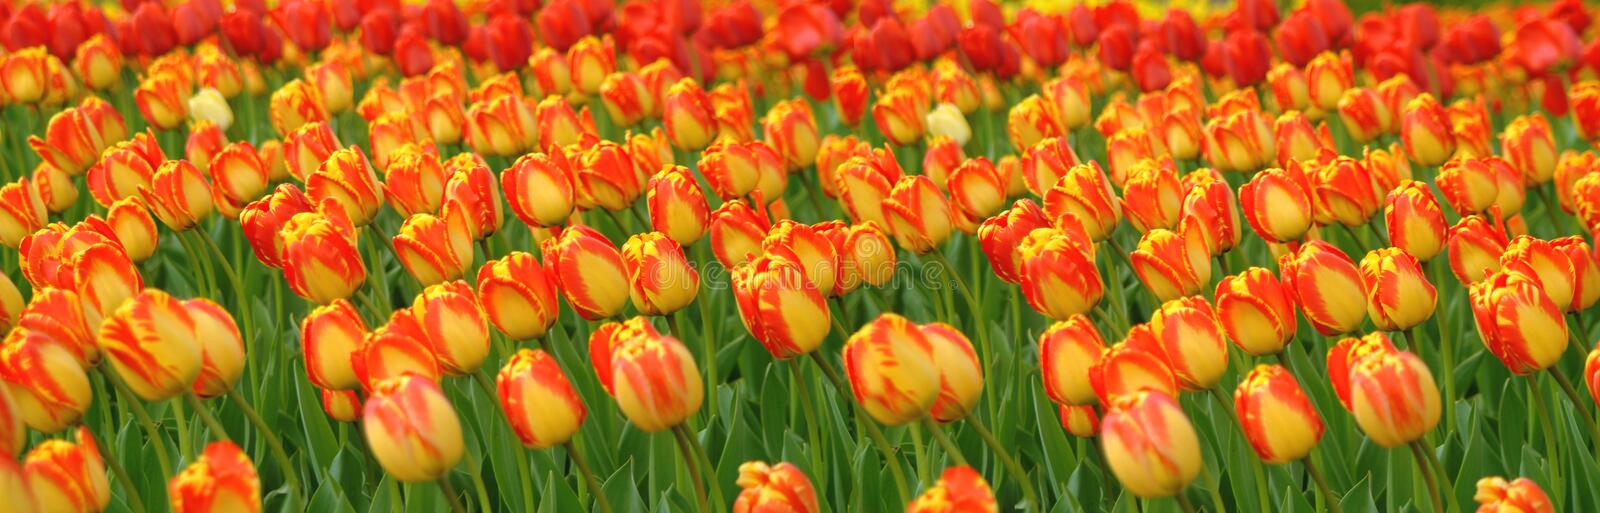 Download Tulips Field Panorama stock photo. Image of bloom, yellow - 735970